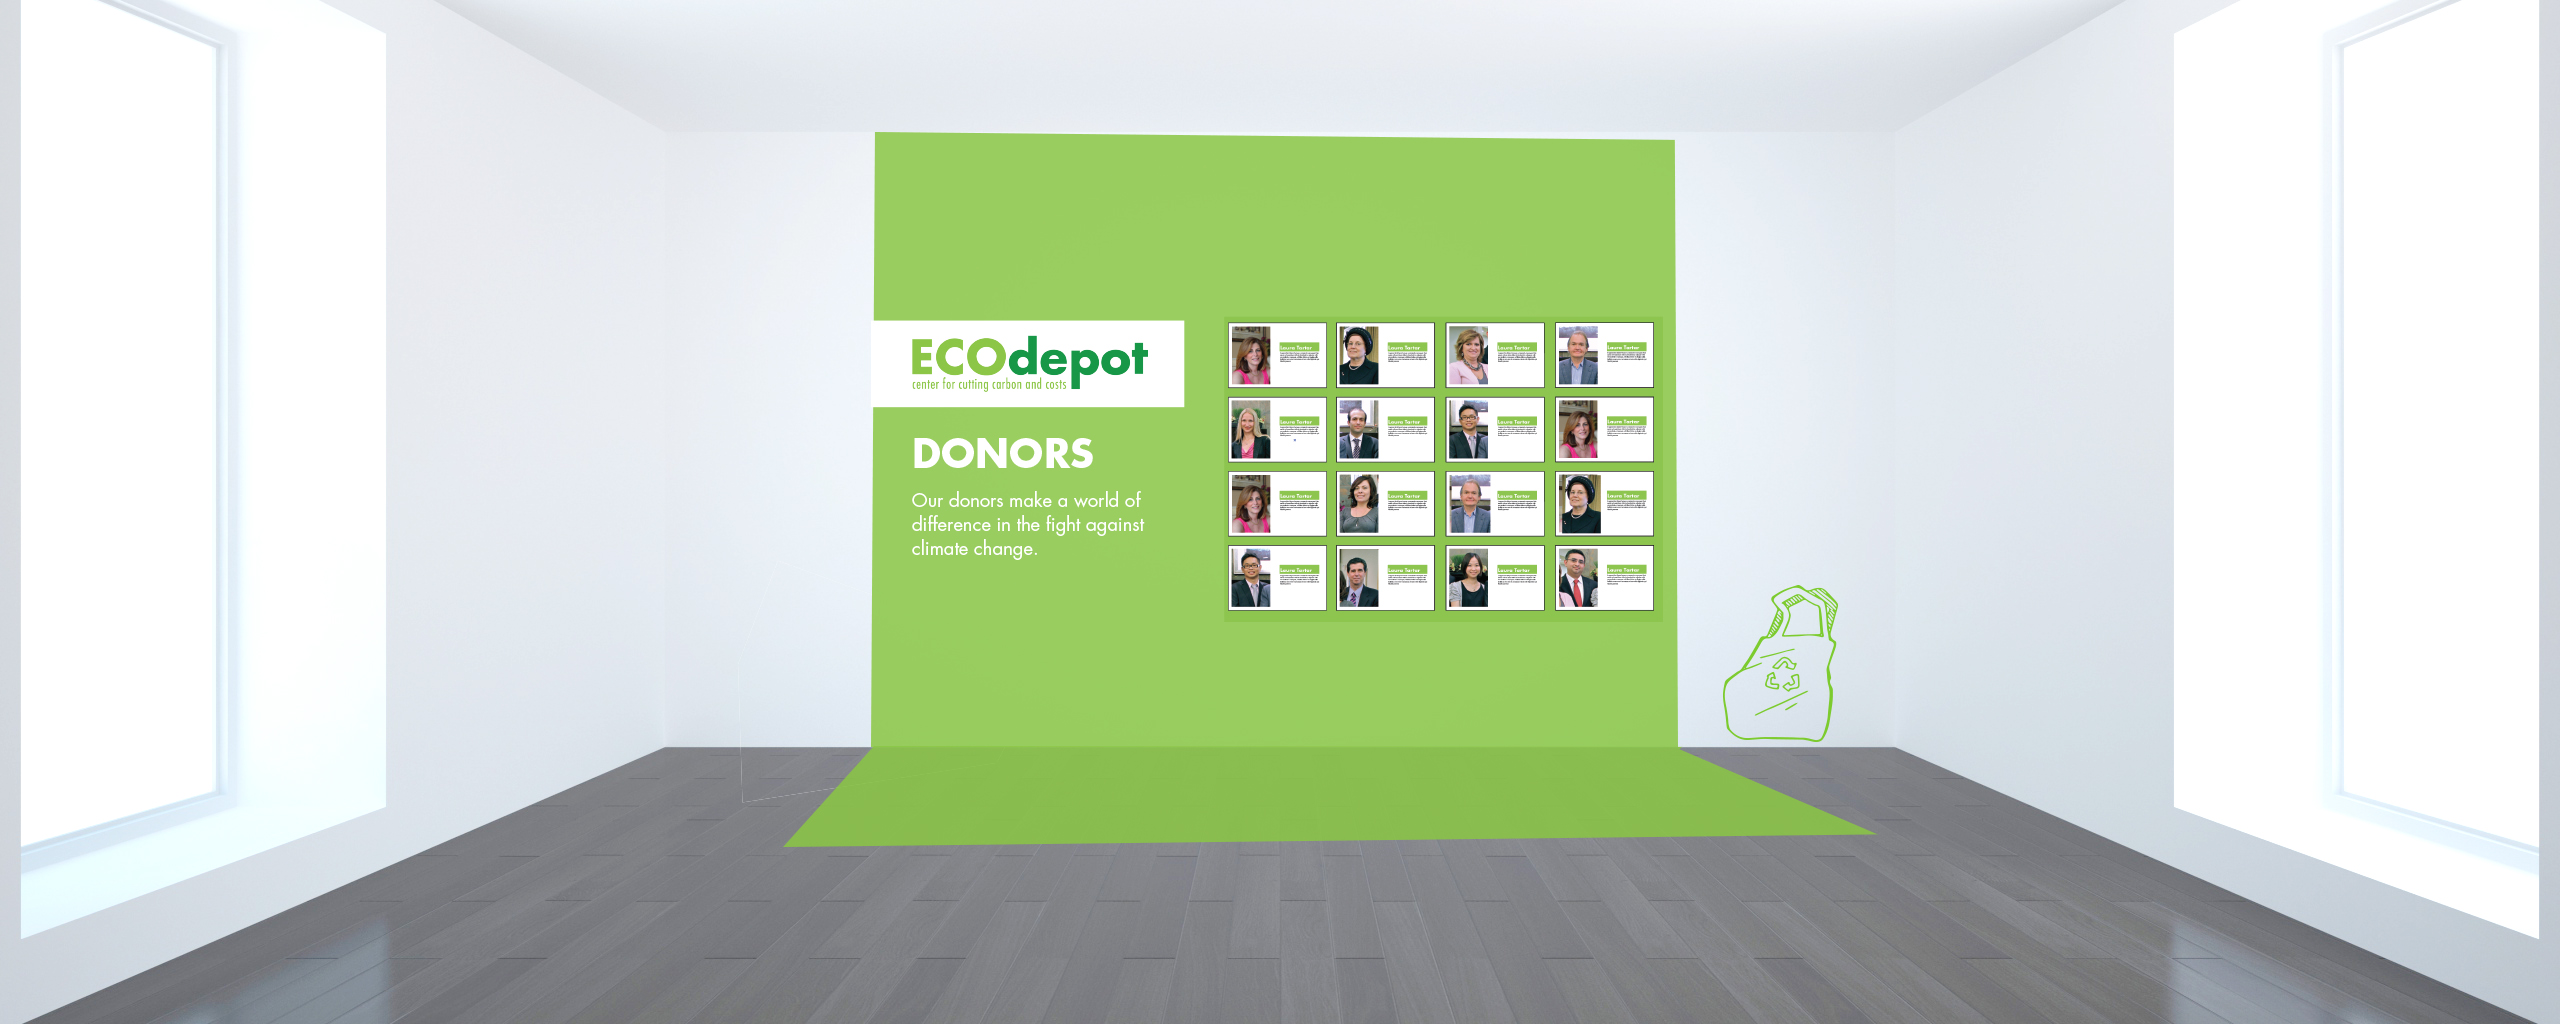 eco depot exhibit- donors